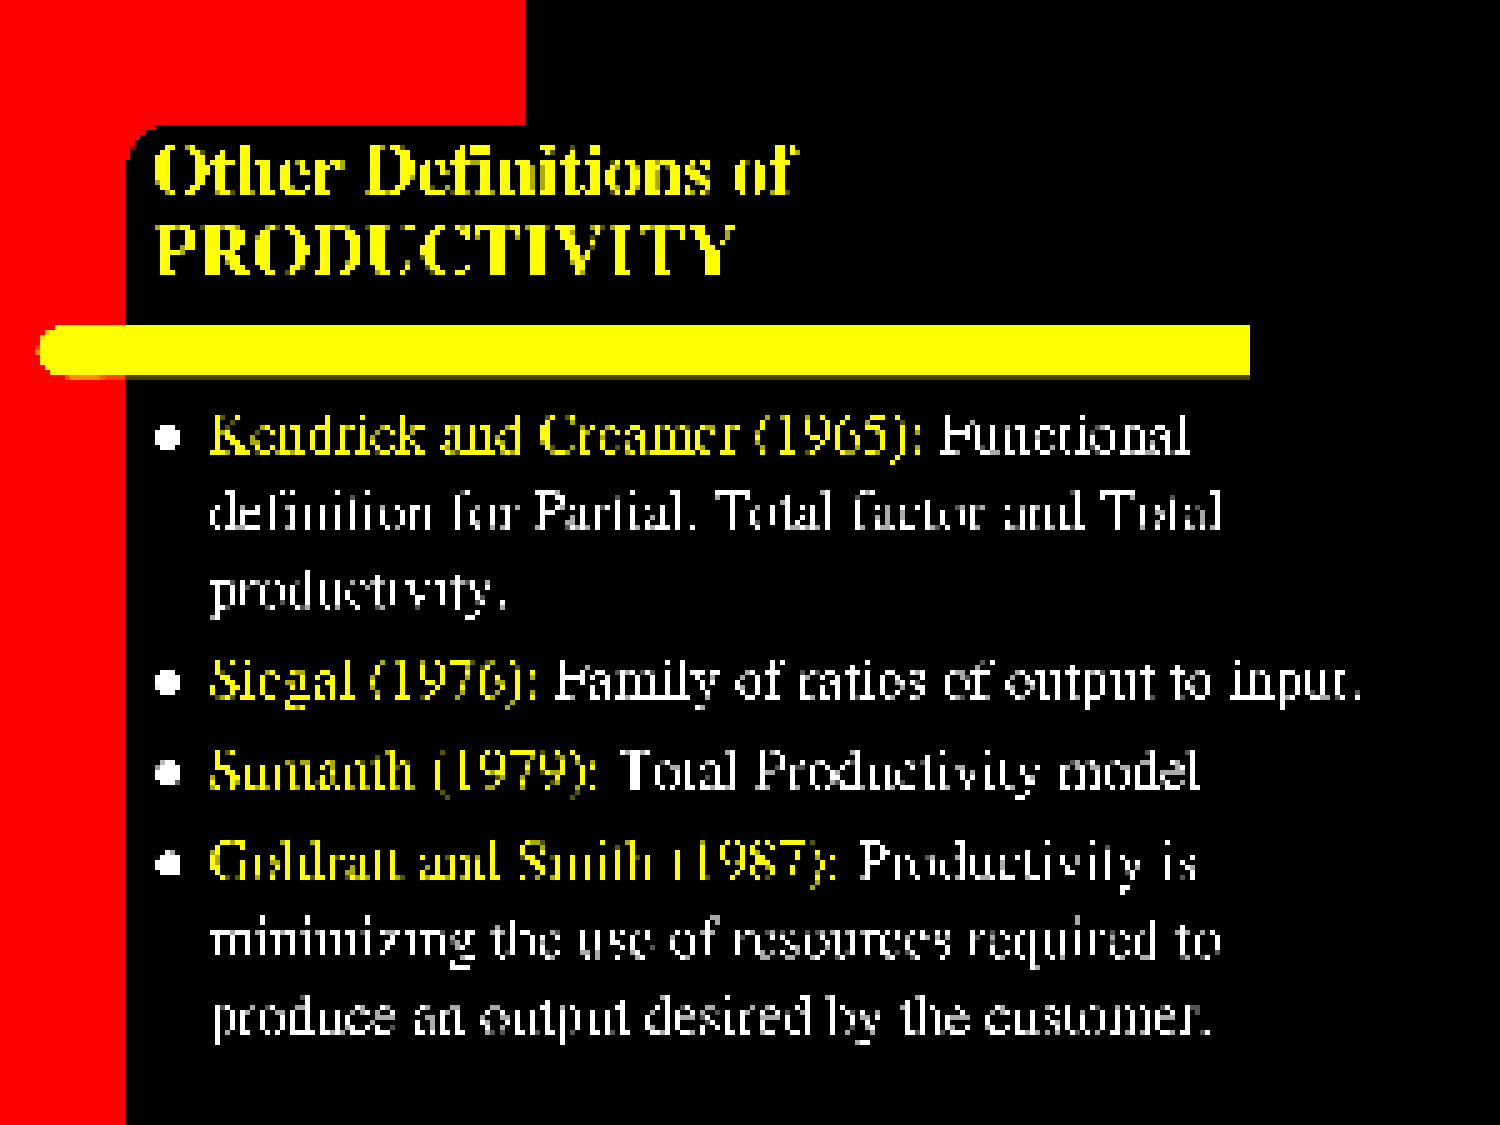 defining the concept of productivity Defining productivity as the product of efficiency and effectiveness saurabh s deshpande & stephanie c payne texas a&m university abstract employee productivity is one of the most common criteria used for personnel decisions of raises, promotion, and termination.